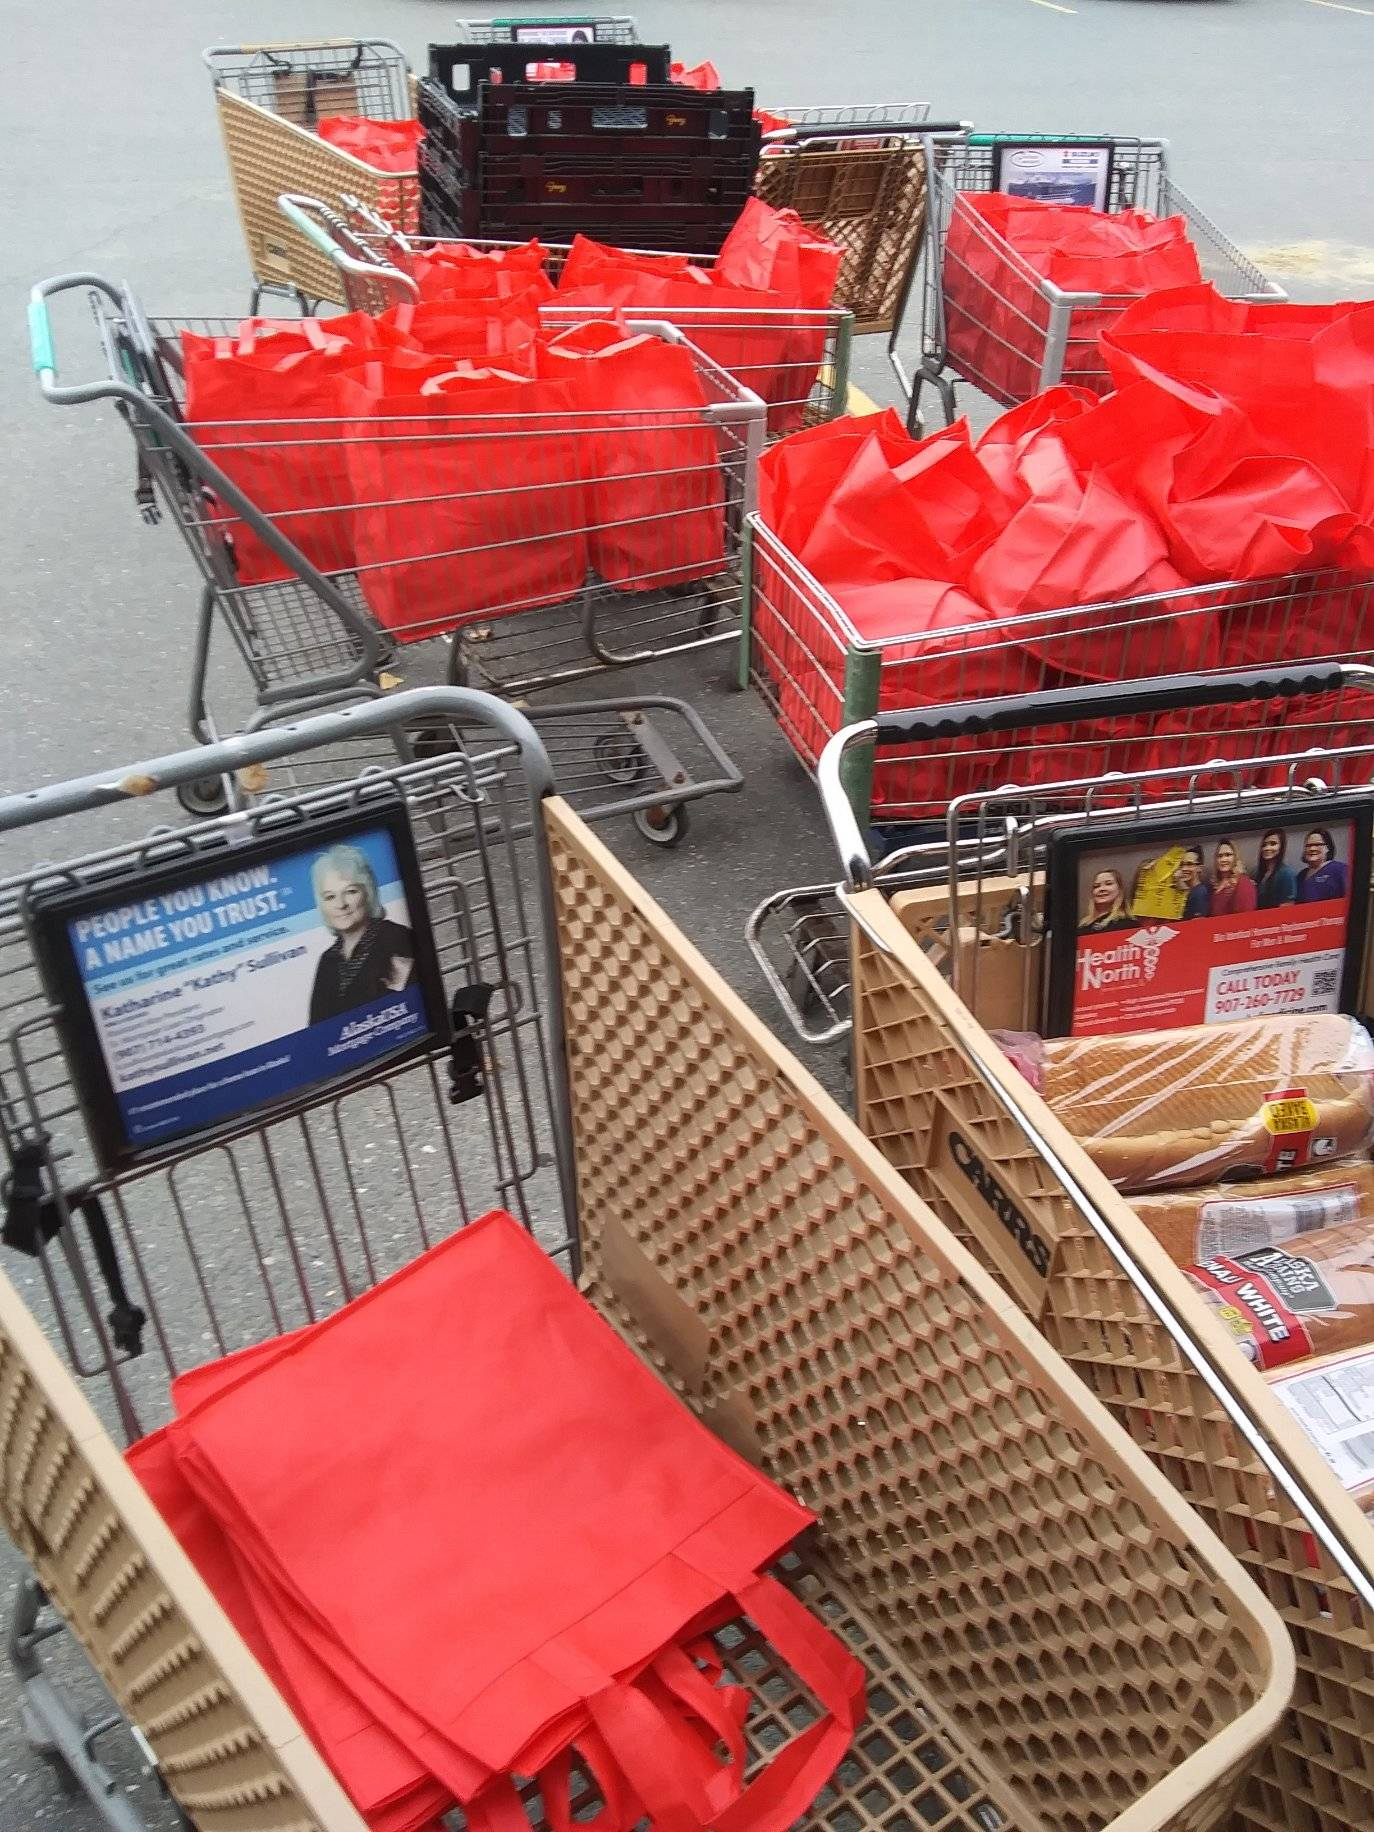 Shopping carts full of food bags for Soldotna residents are seen here outside Hospice of the Central Peninsula in Soldotna, Alaska on Oct. 8, 2020. (Photo courtesy Suzie Smalley)